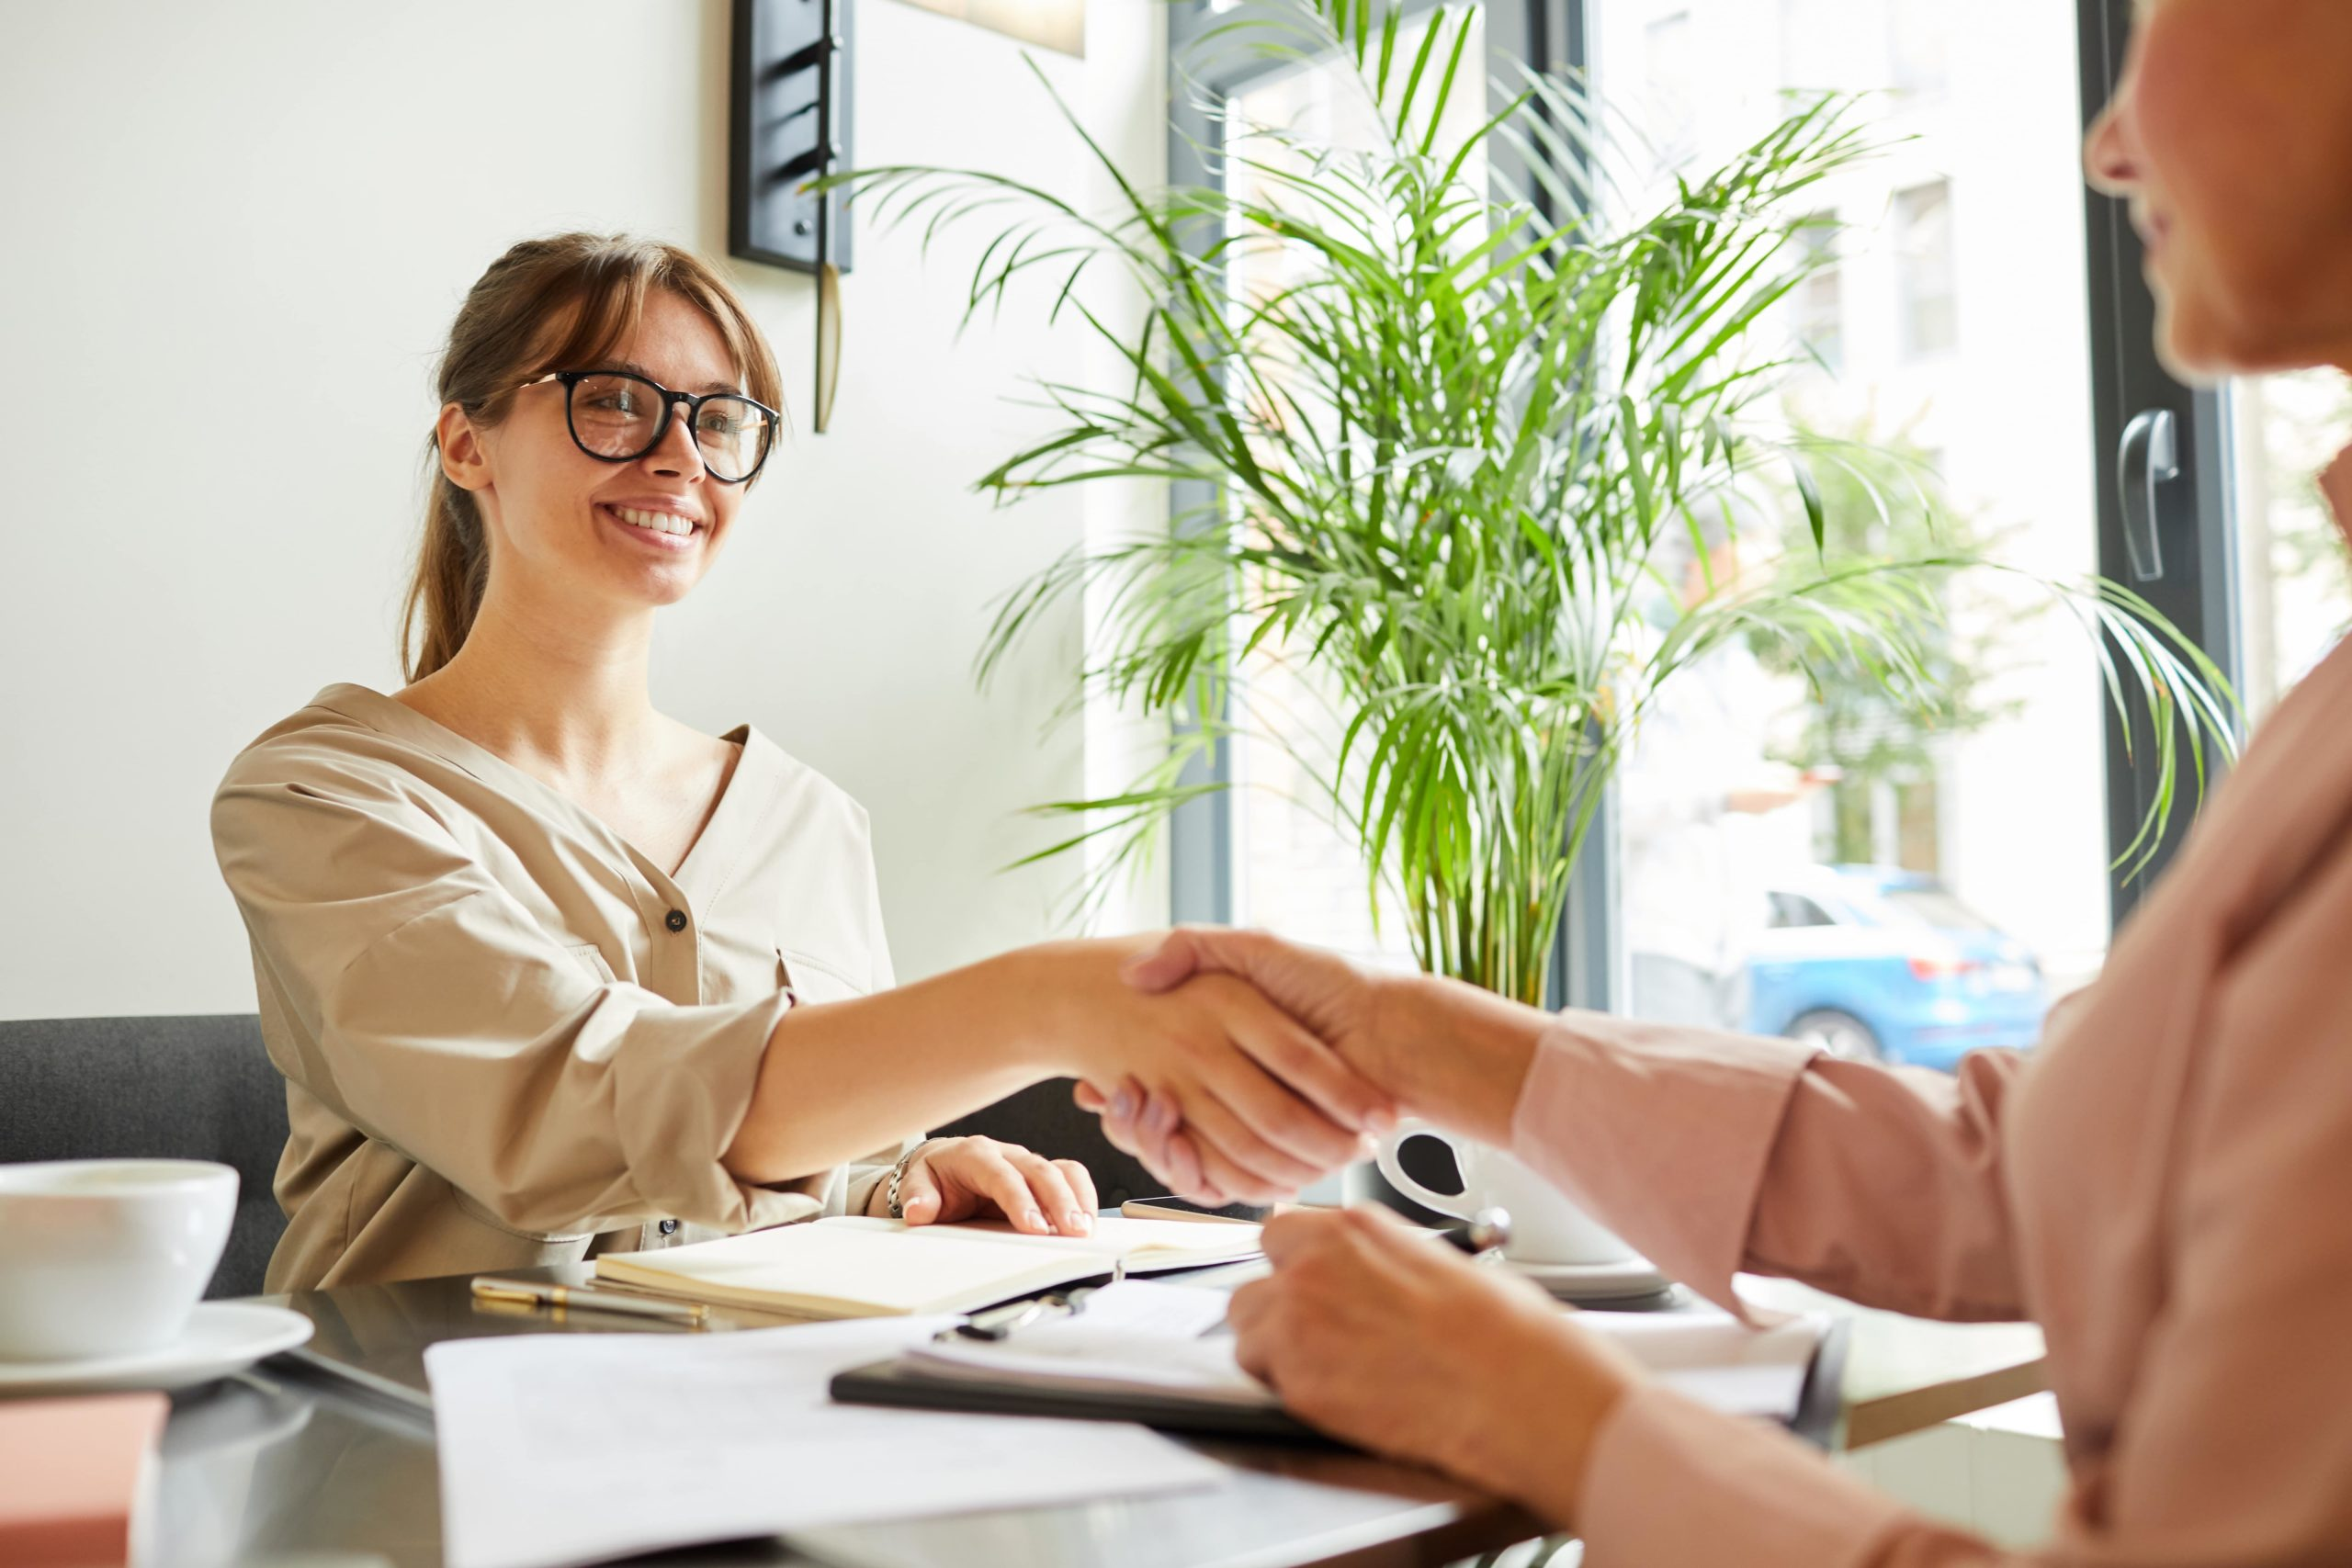 smiling woman shaking hands with lender